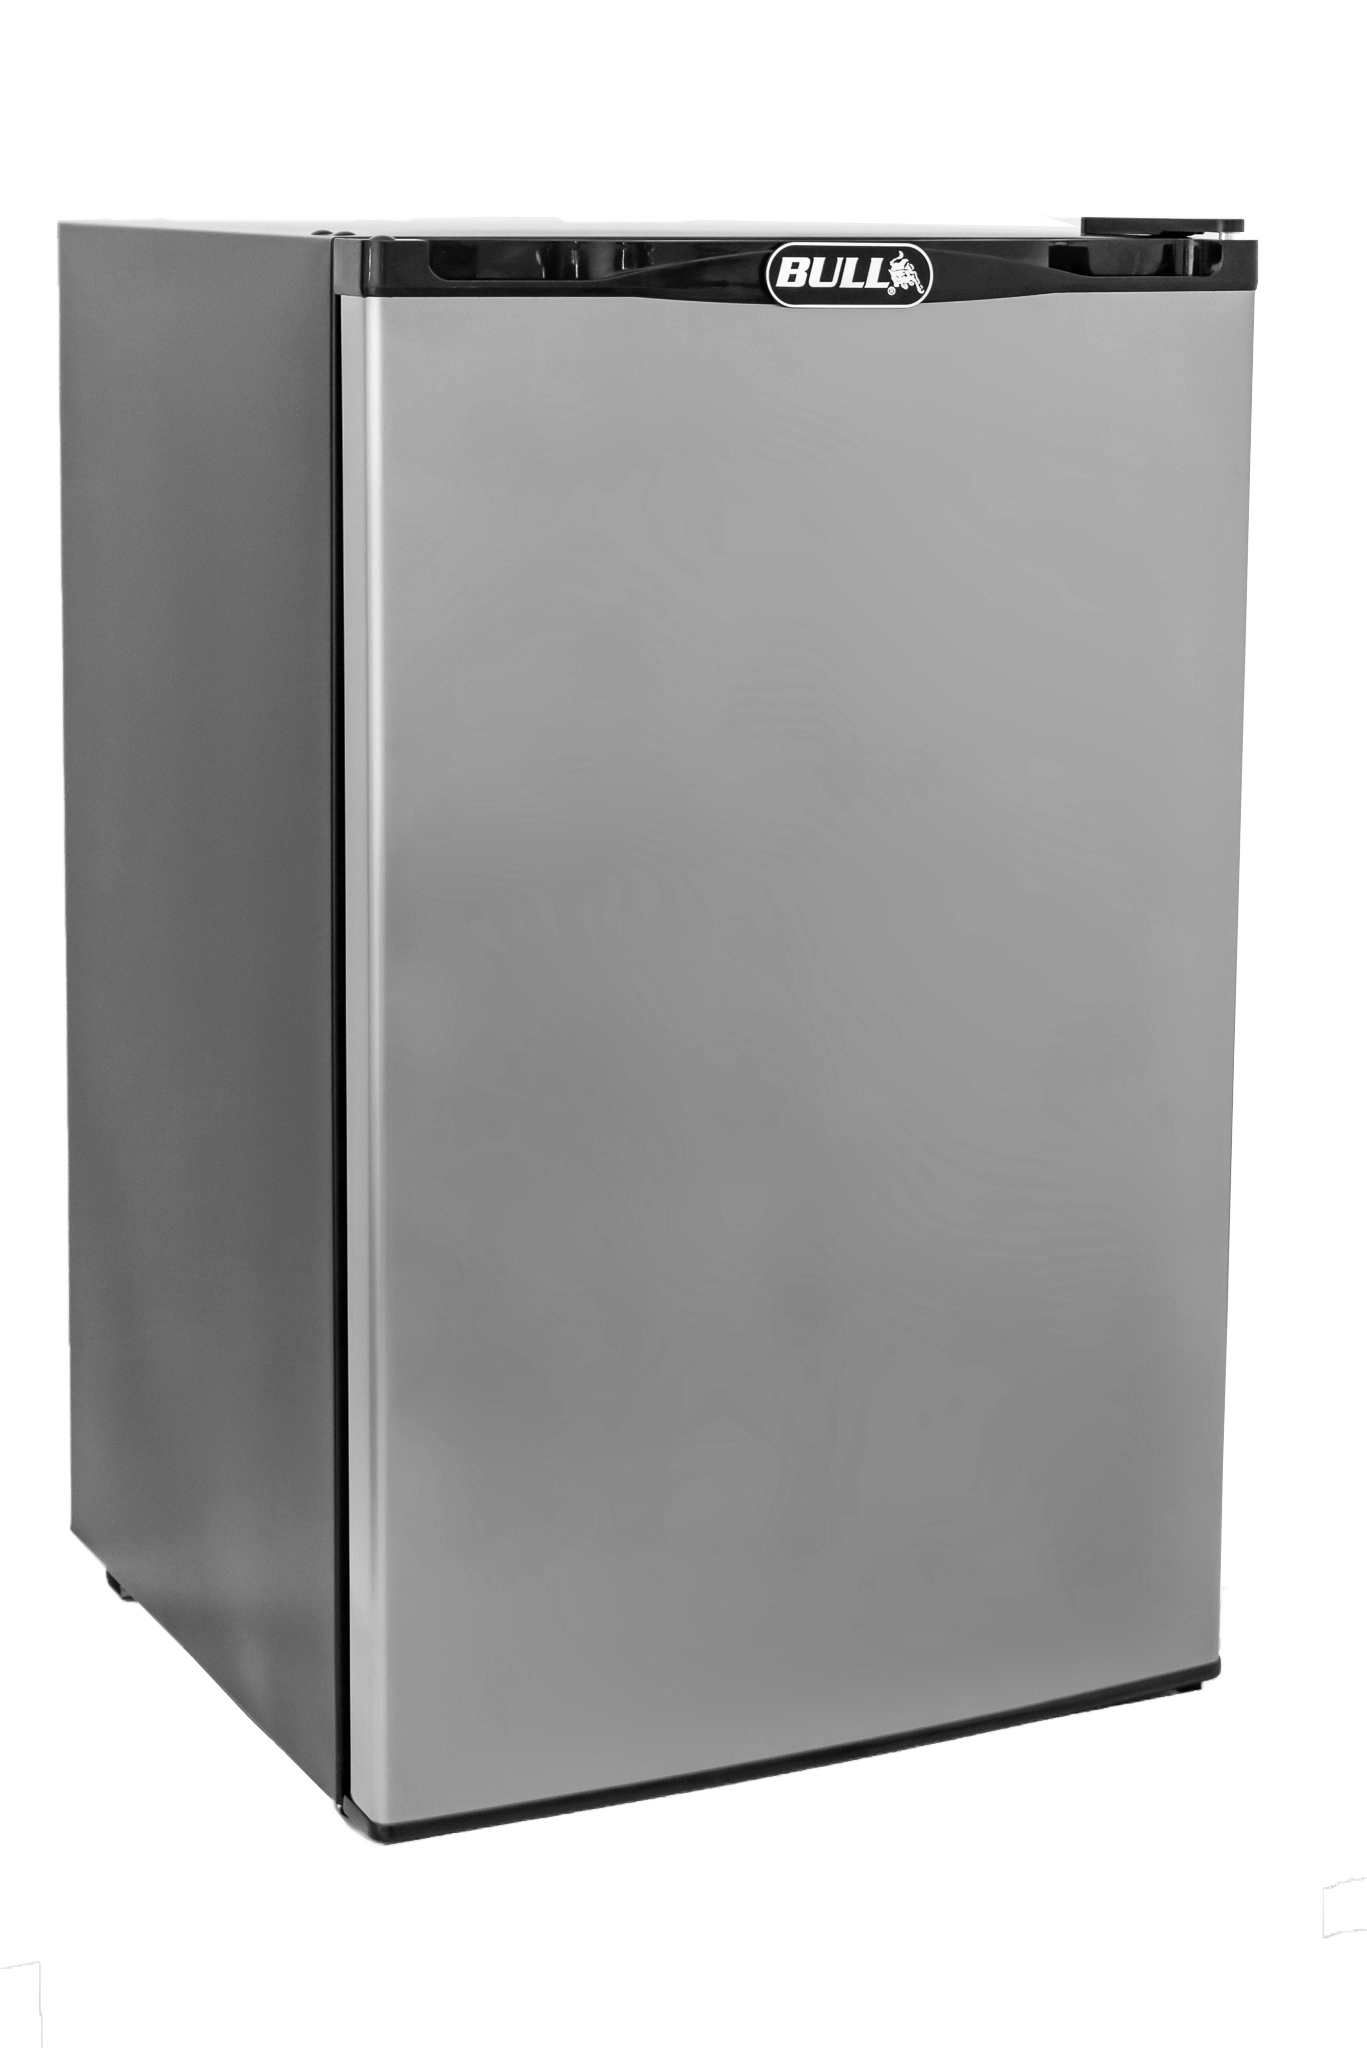 Refrigerator - Stainless Steel Front Panel - Not Outdoor Rated , BBQ Components ,  europe, Bull europe limited, bull bbq europe